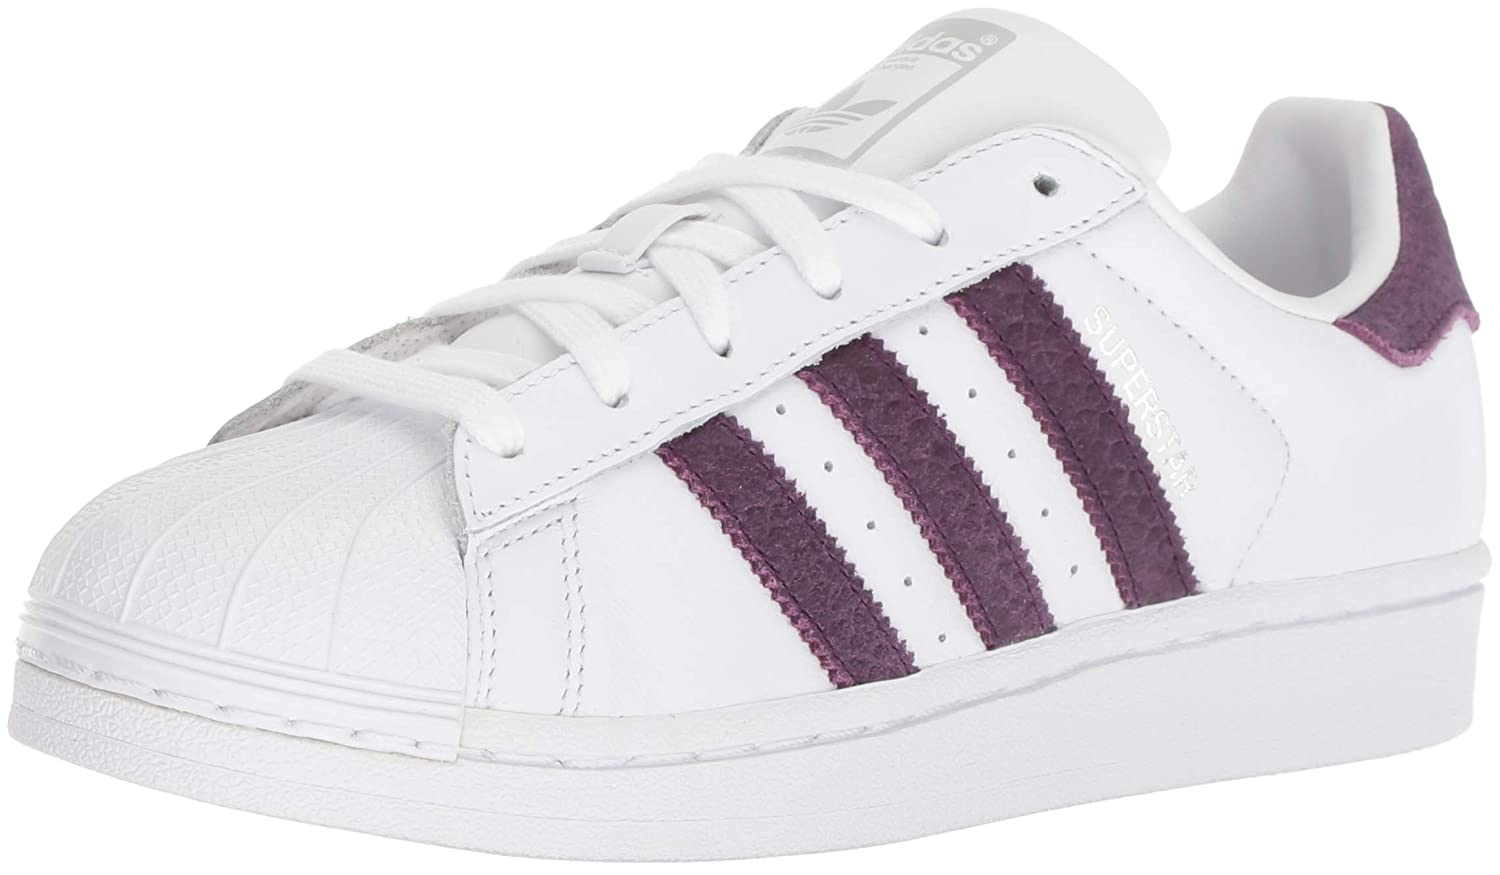 the latest 76d48 bd89a adidas Originals Women's Superstar Shoes Running, White/red Night/Silver  Metallic, 9 M US